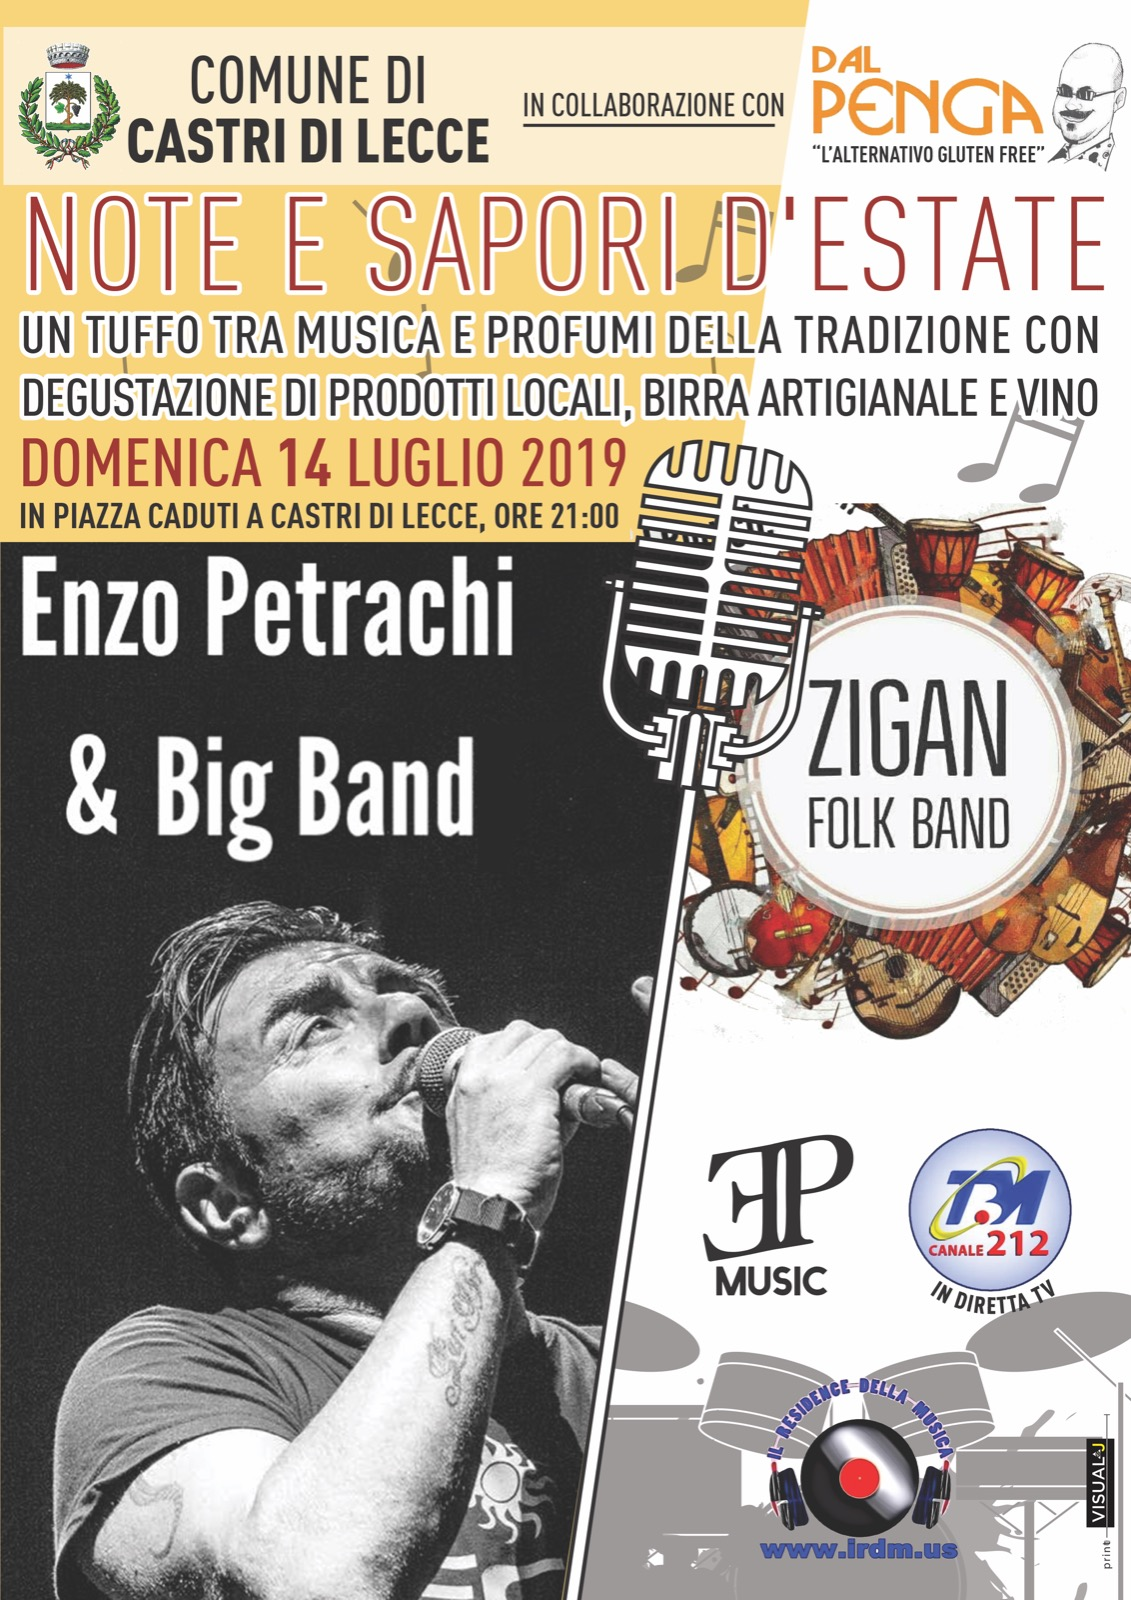 manifesto evento del 14 luglio 2019. Enzo Petrachi and Big Band e Zigan Folk Band.